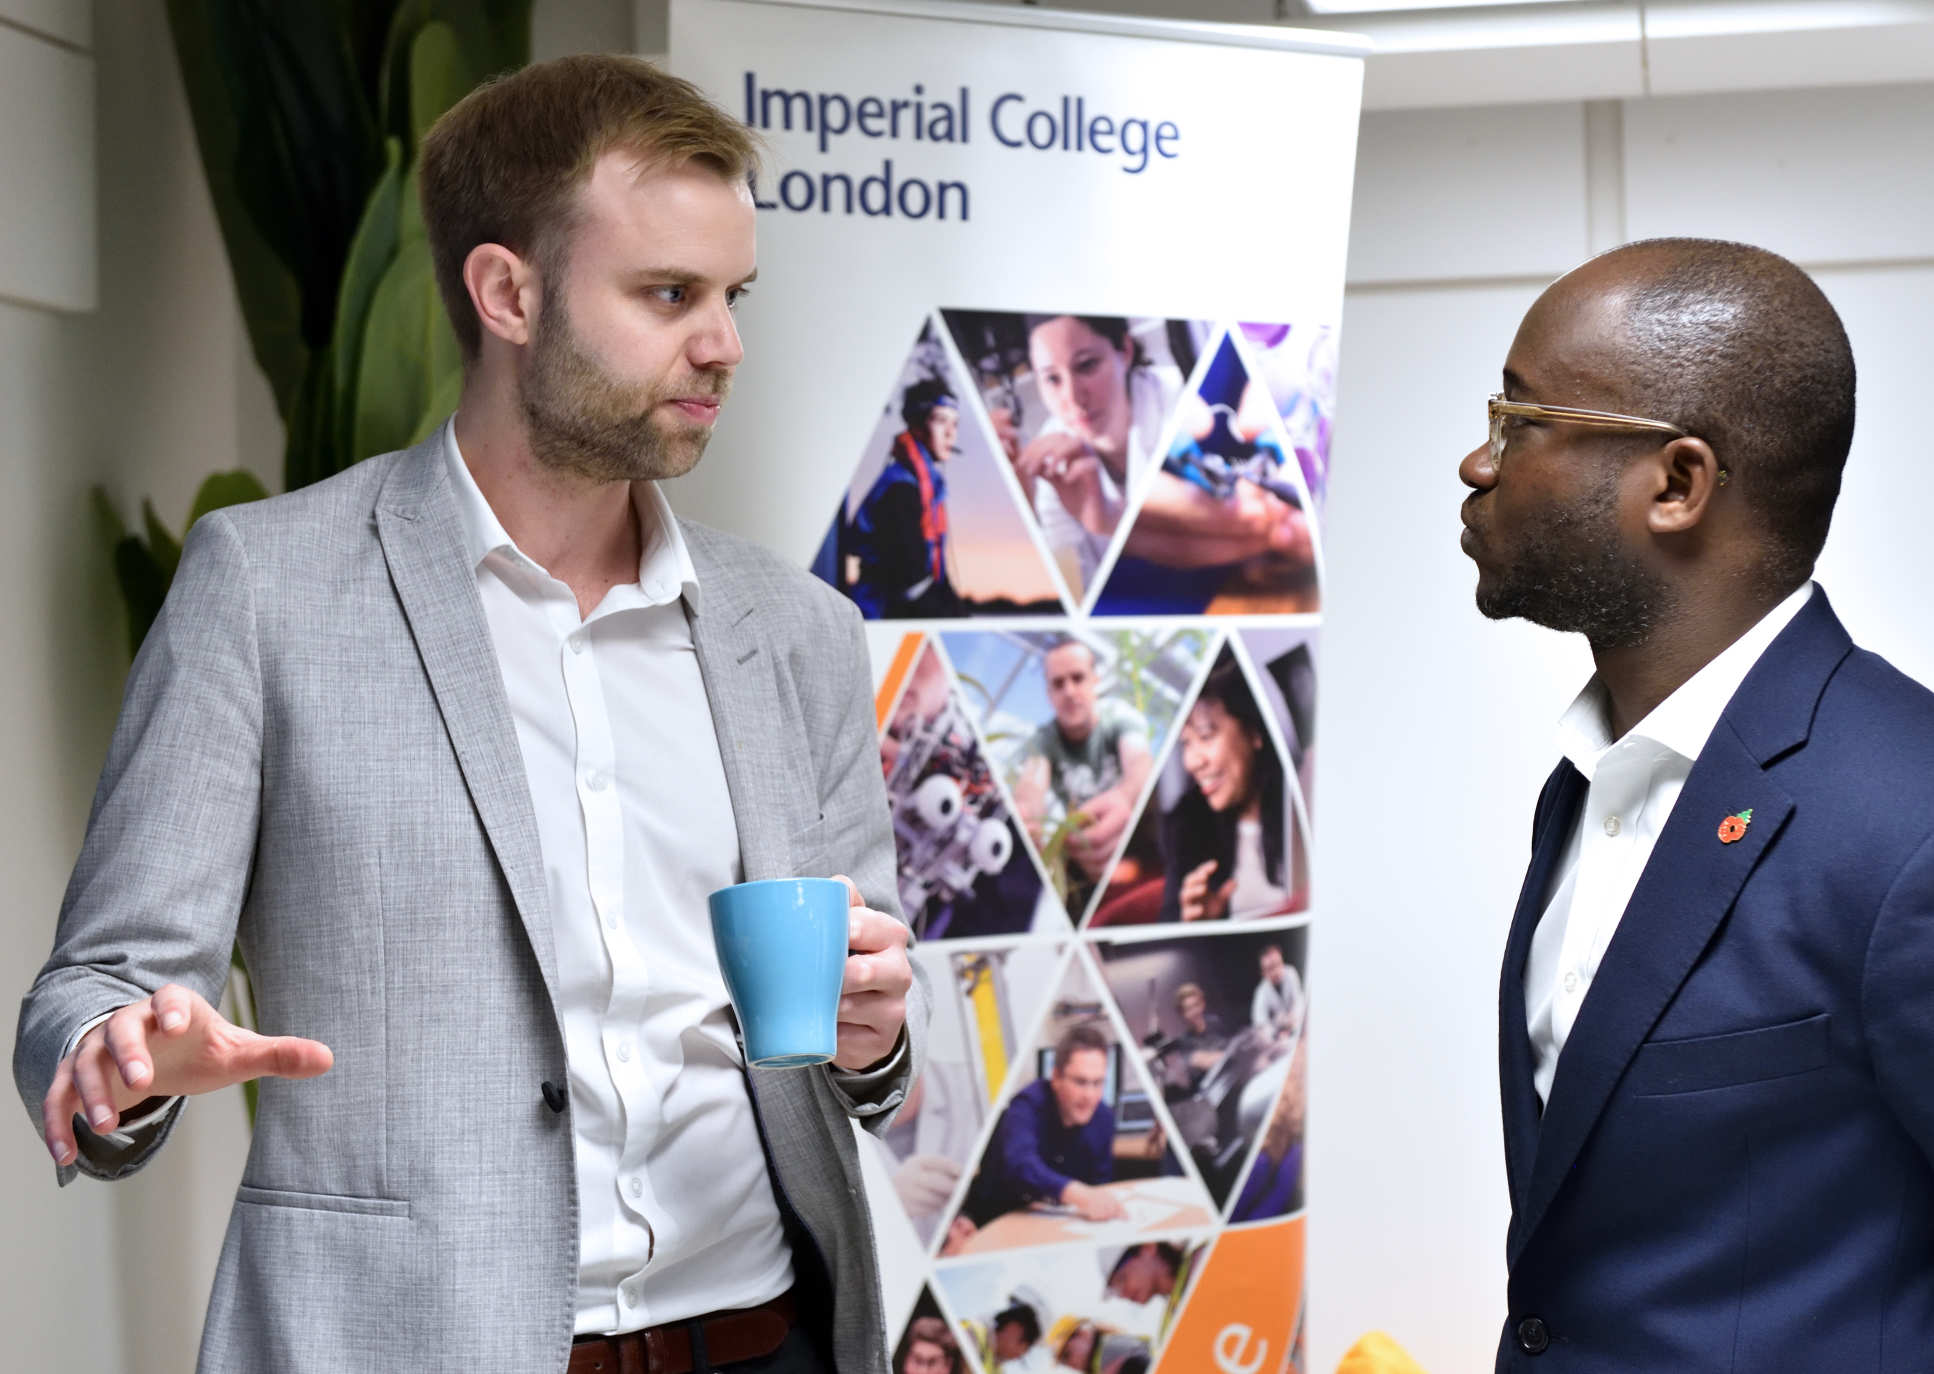 Universities and Science Minister Sam Gyimah interacts with one of the developers